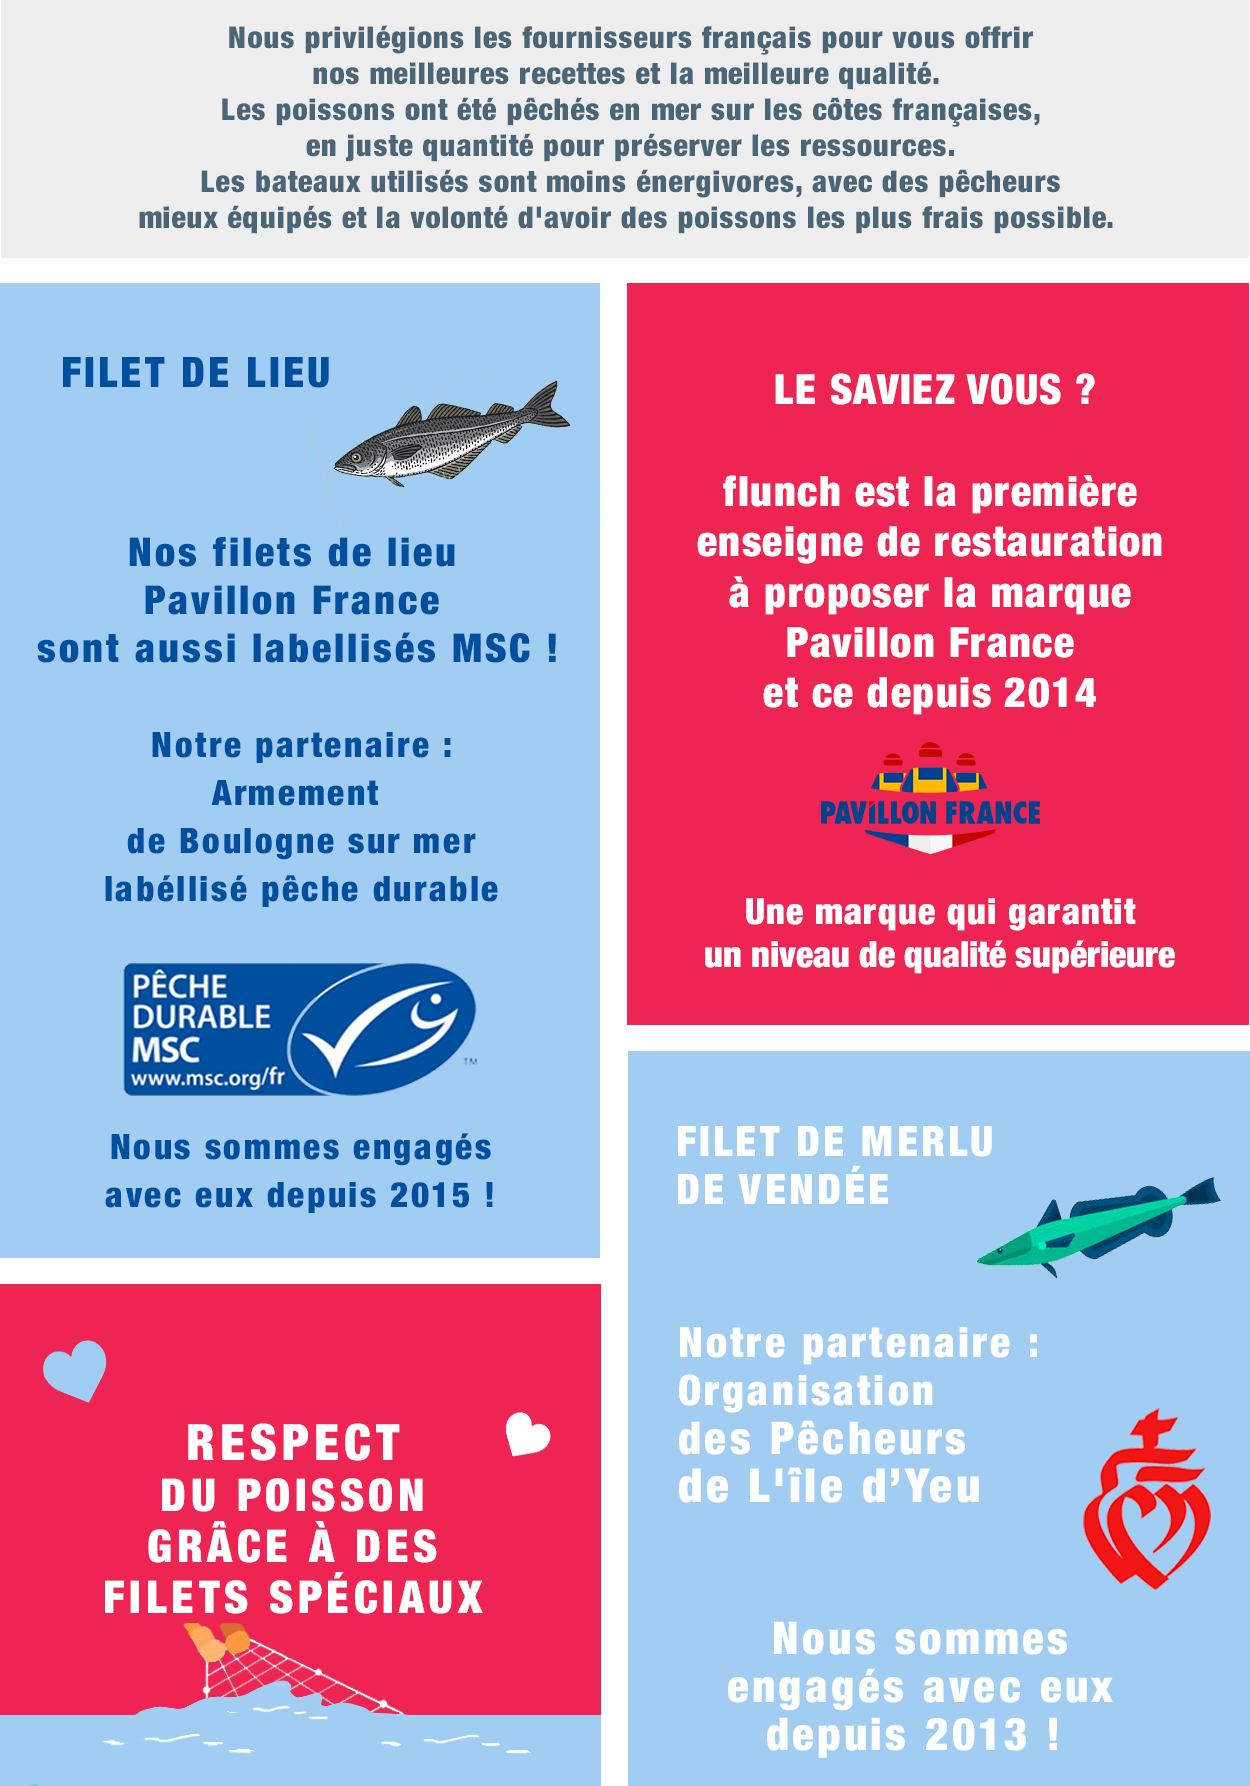 infographie sans bandes blanches